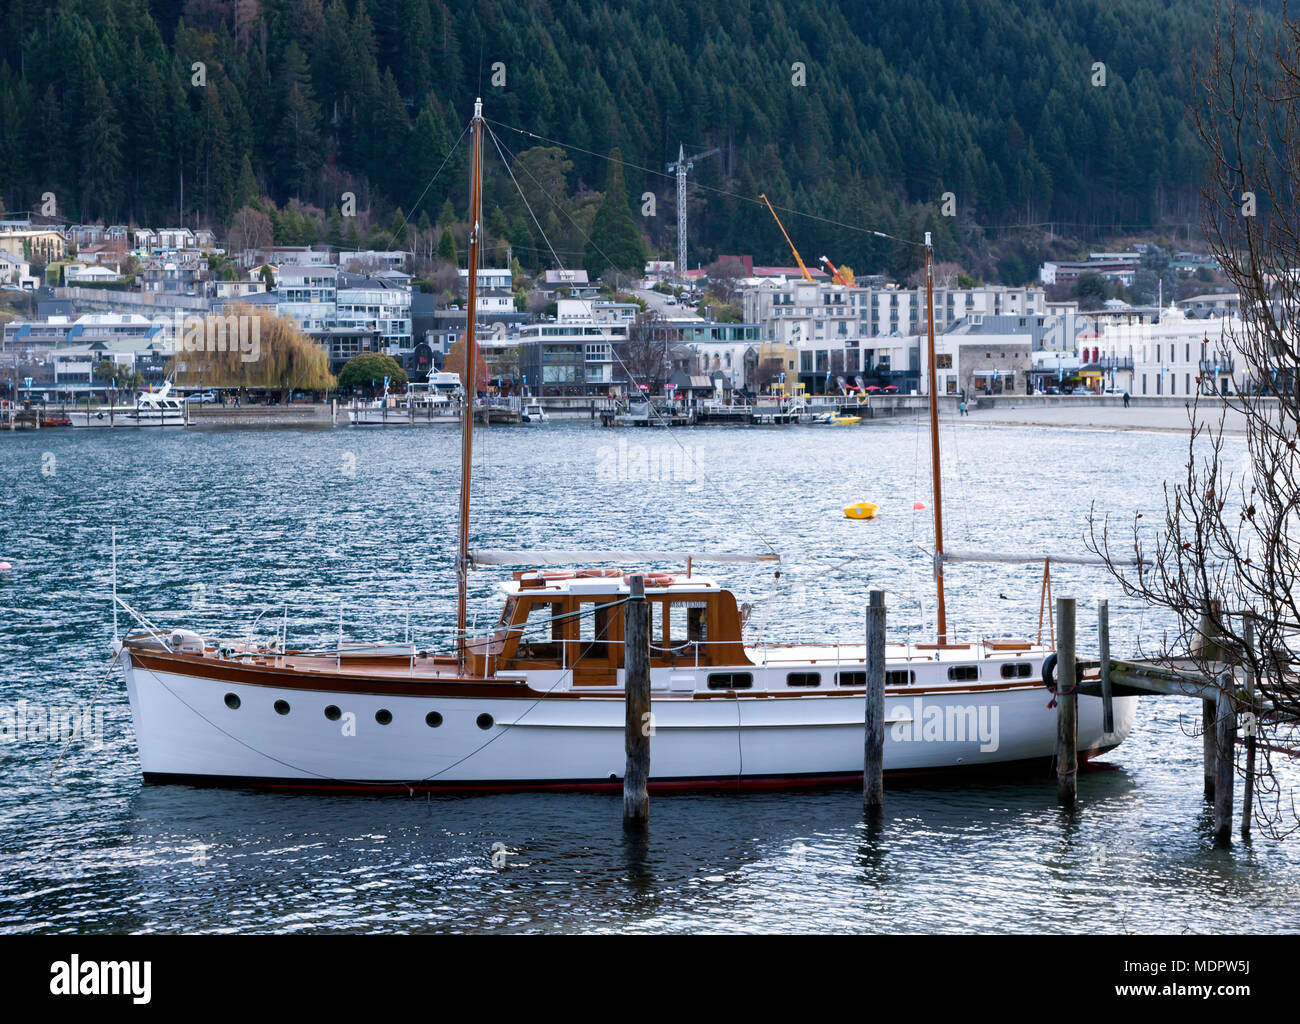 View of the Ketch Yvalda, moored in Queenstown Bay,   taken from from the Queenstown  Botanical Gardens, Queenstown, South Island, New Zealand - Stock Image